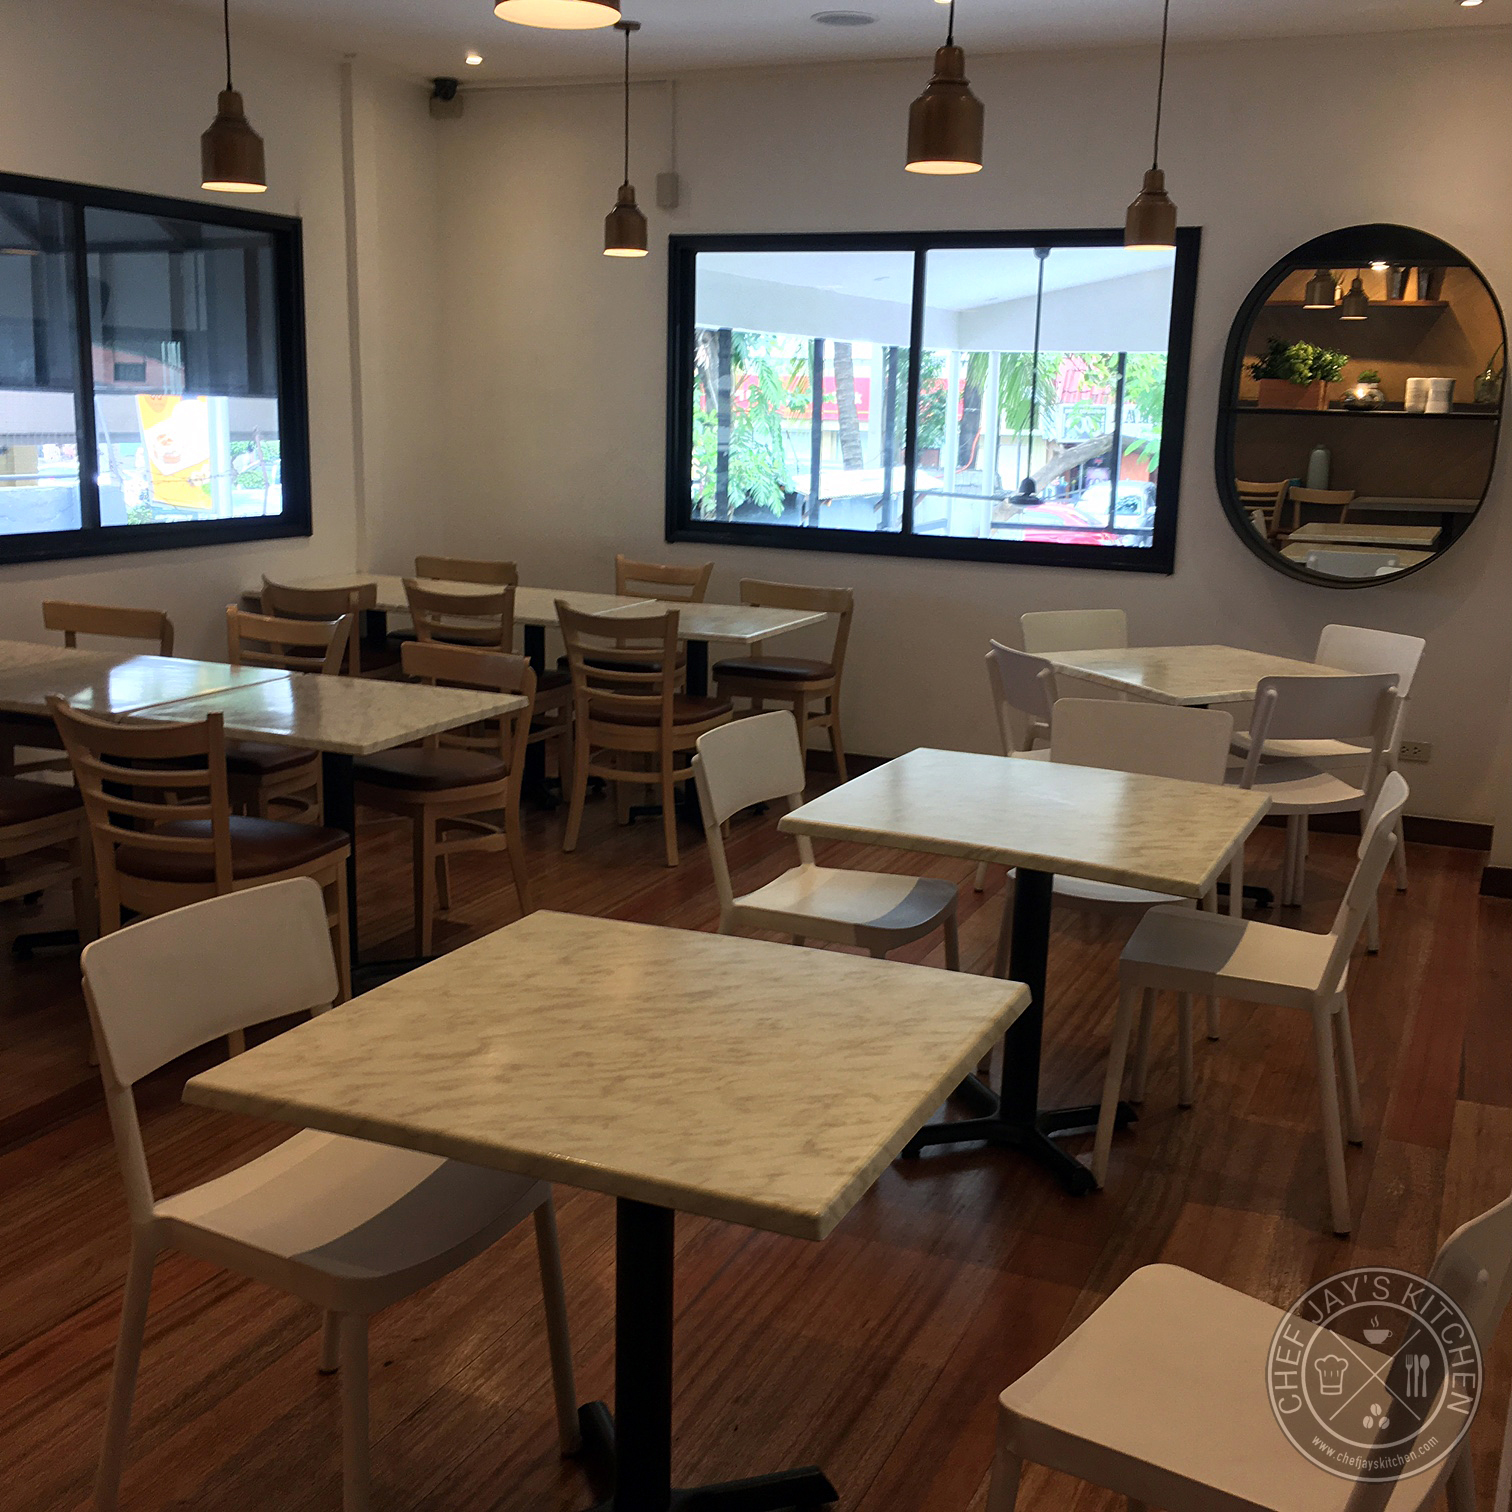 little owl cafe: a lovely brunch cafe in new manila | chef jay's